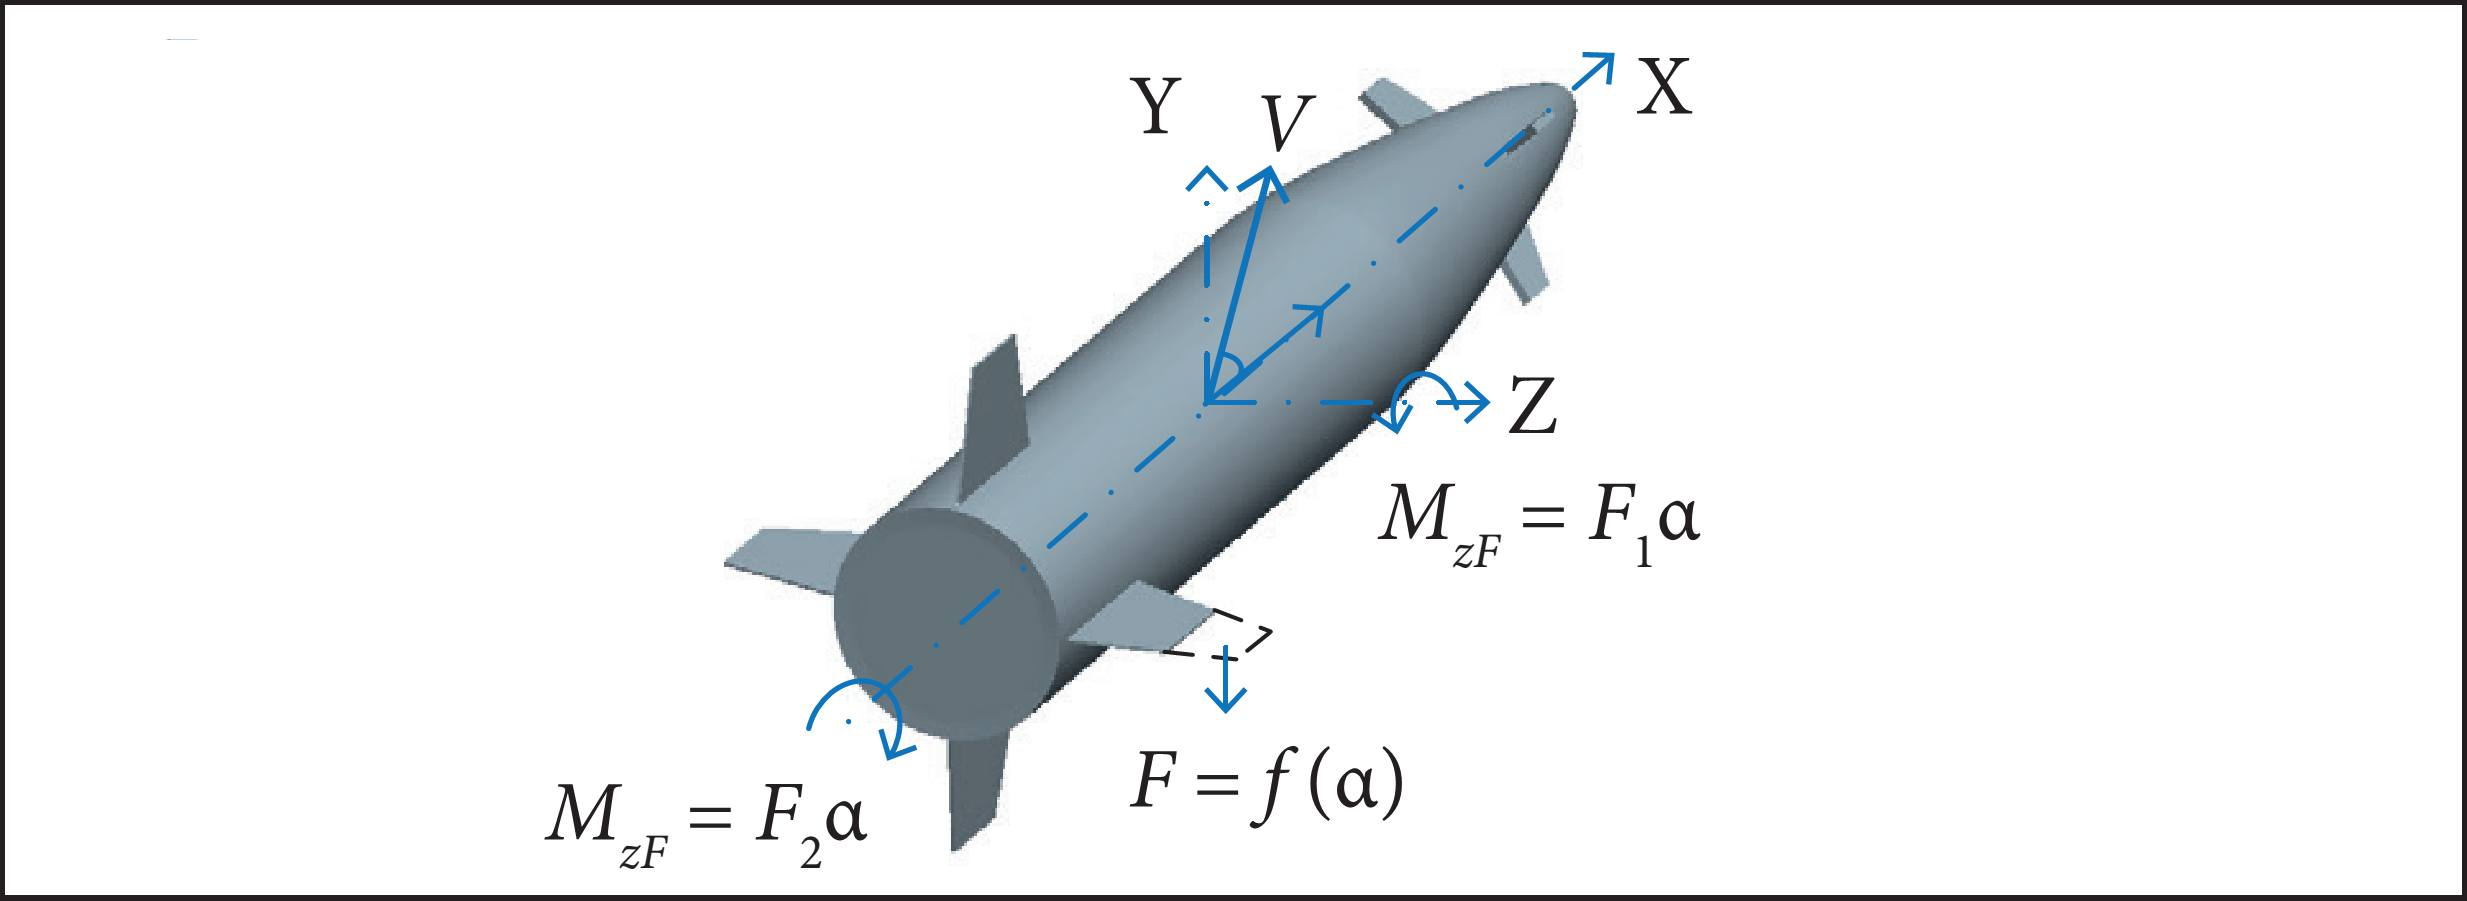 Visor Redalyc The Control Of Asymmetric Rolling Missiles Based On Kc 135 Engineering Schematics Structural Damage Schematic Diagram